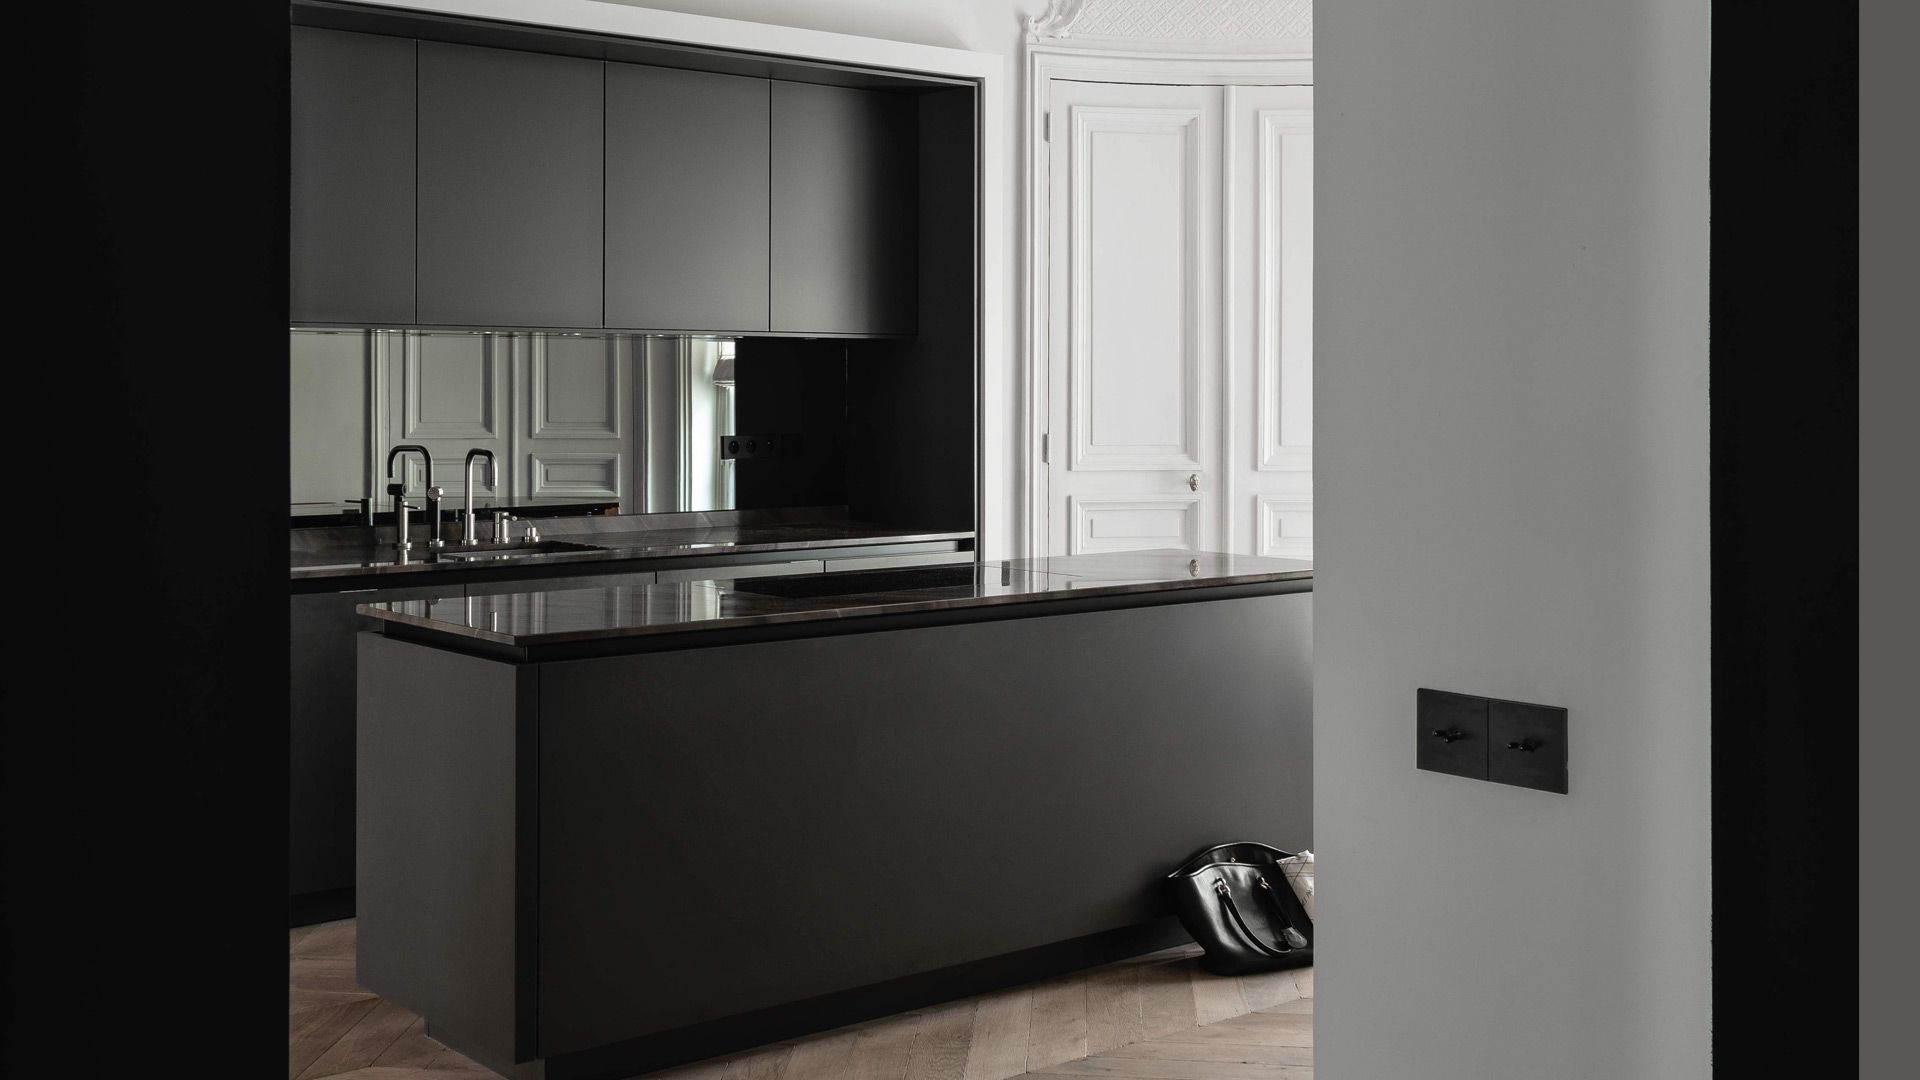 SieMatic-kitchens-PURE-06_06.jpg 1 920×1 080 pikseli